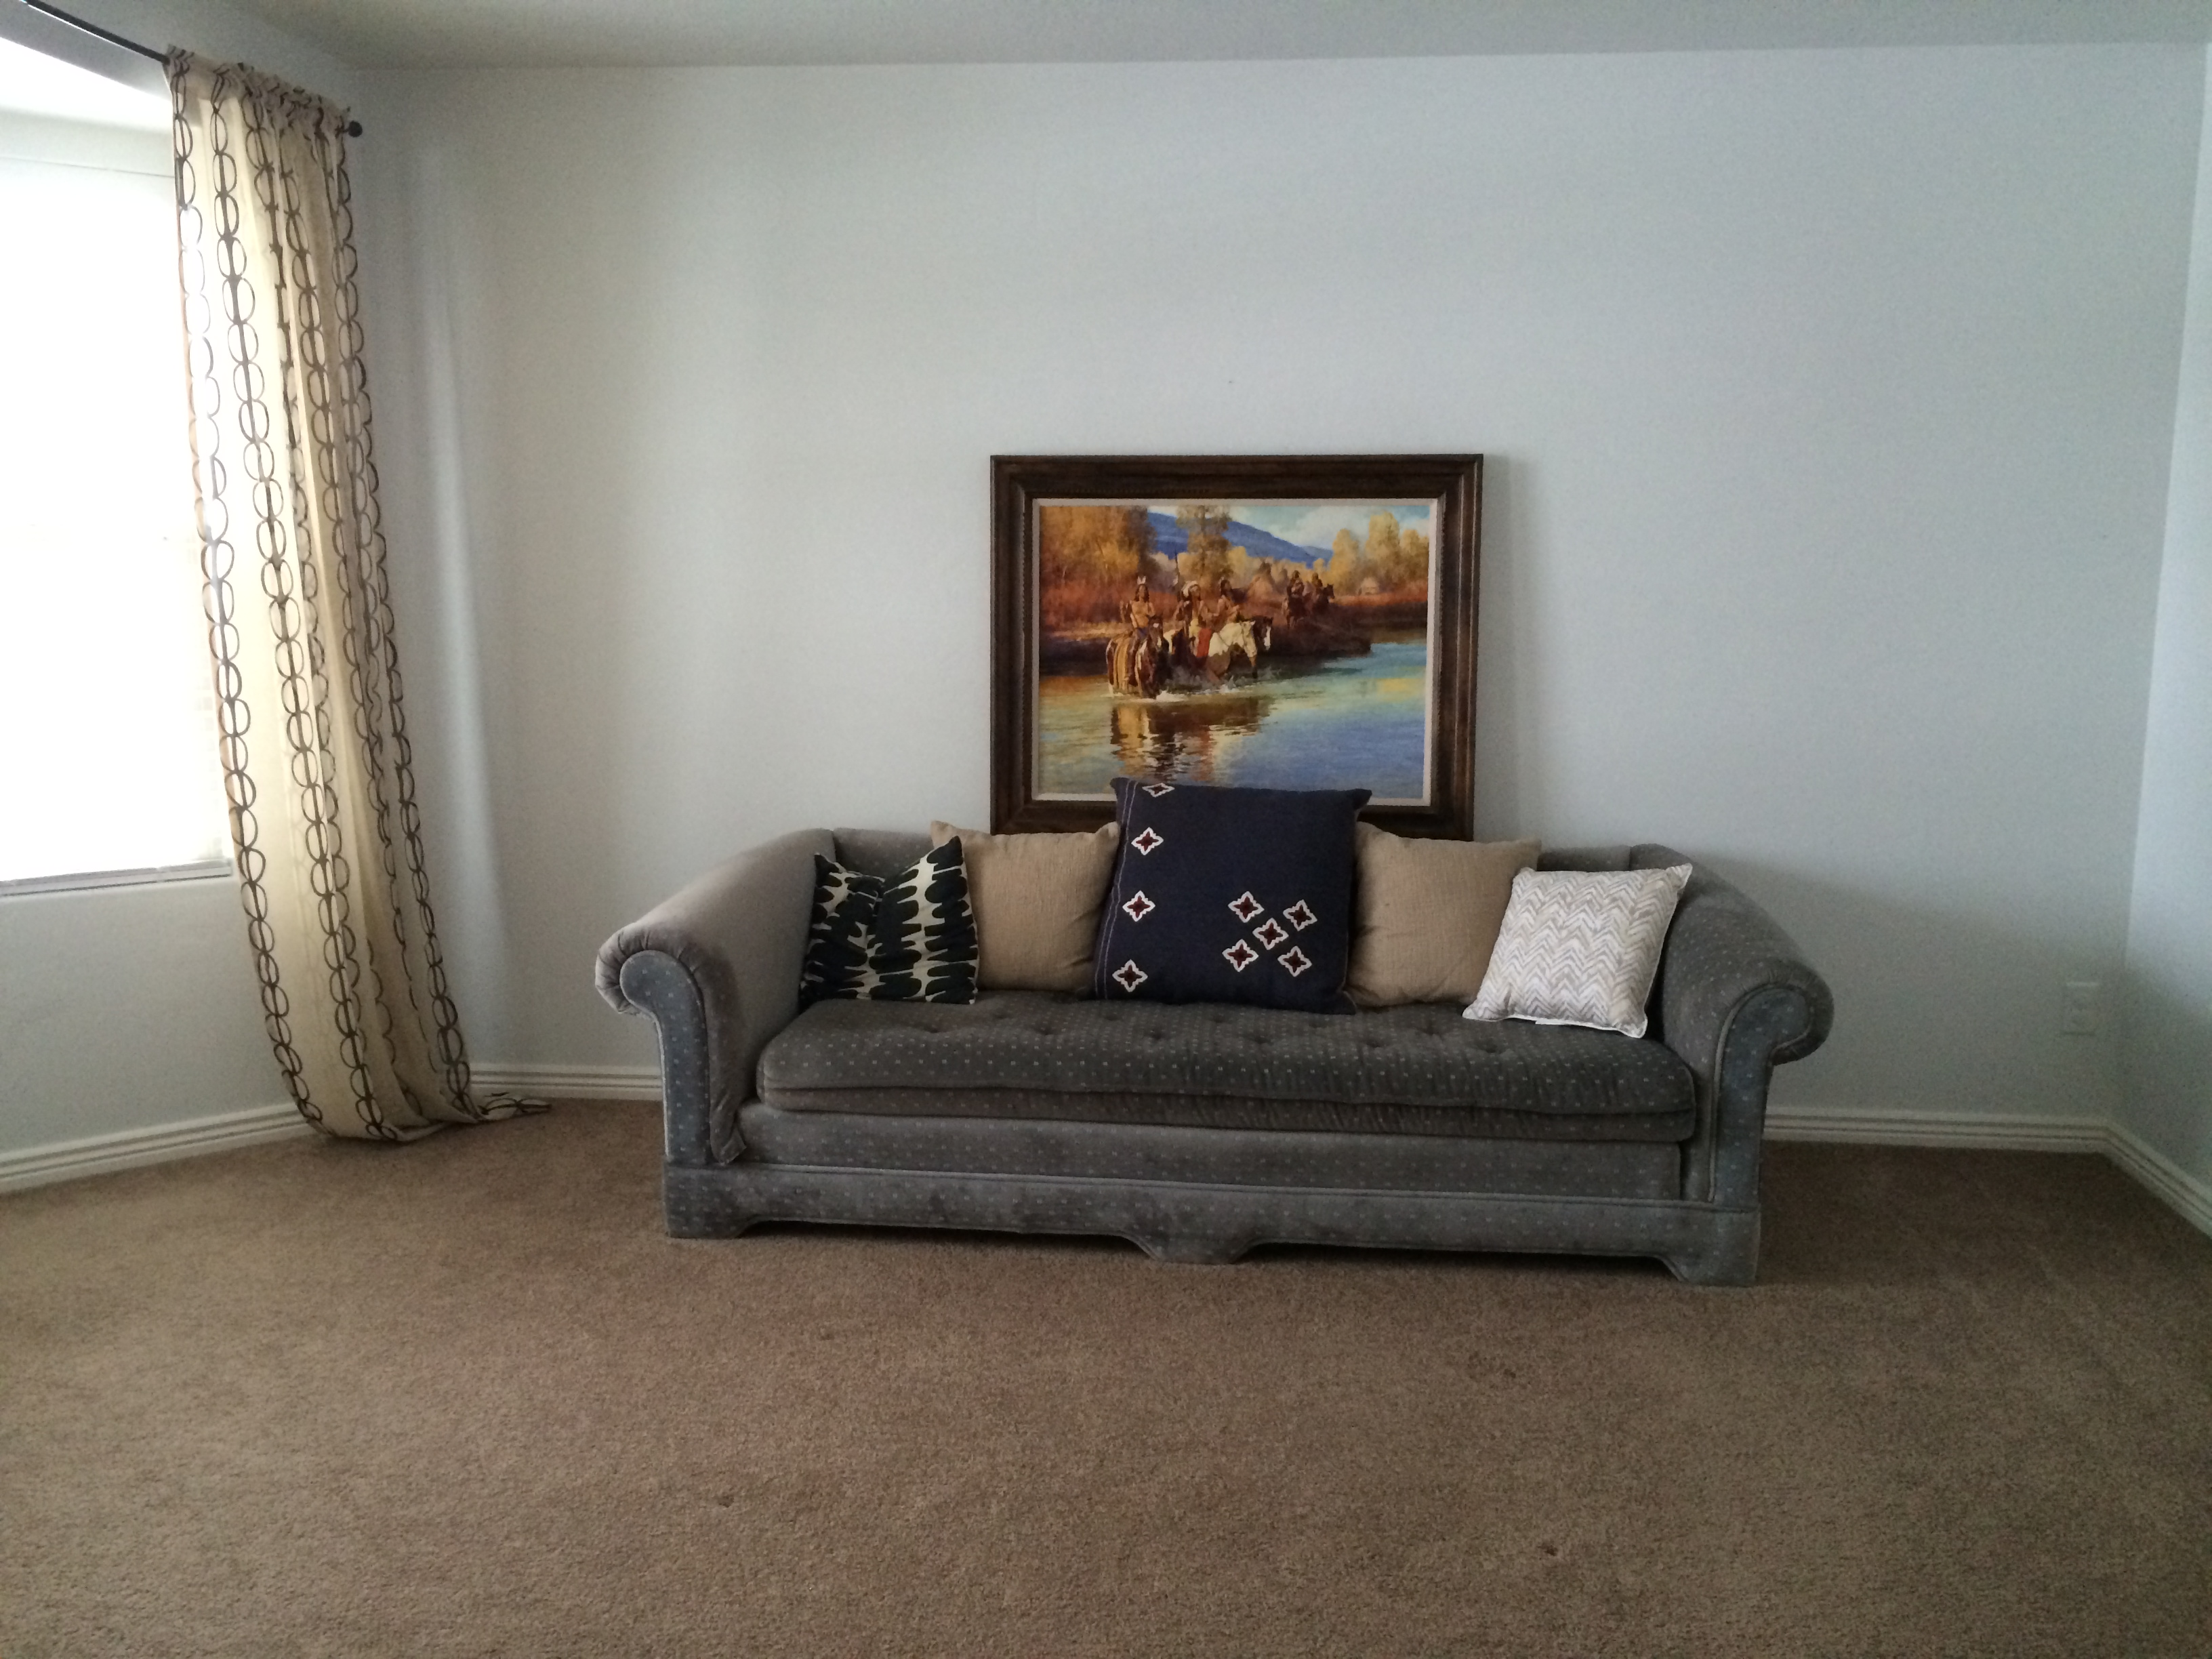 95+ [ Empty Living Room Images ] - My Empty New Living ...